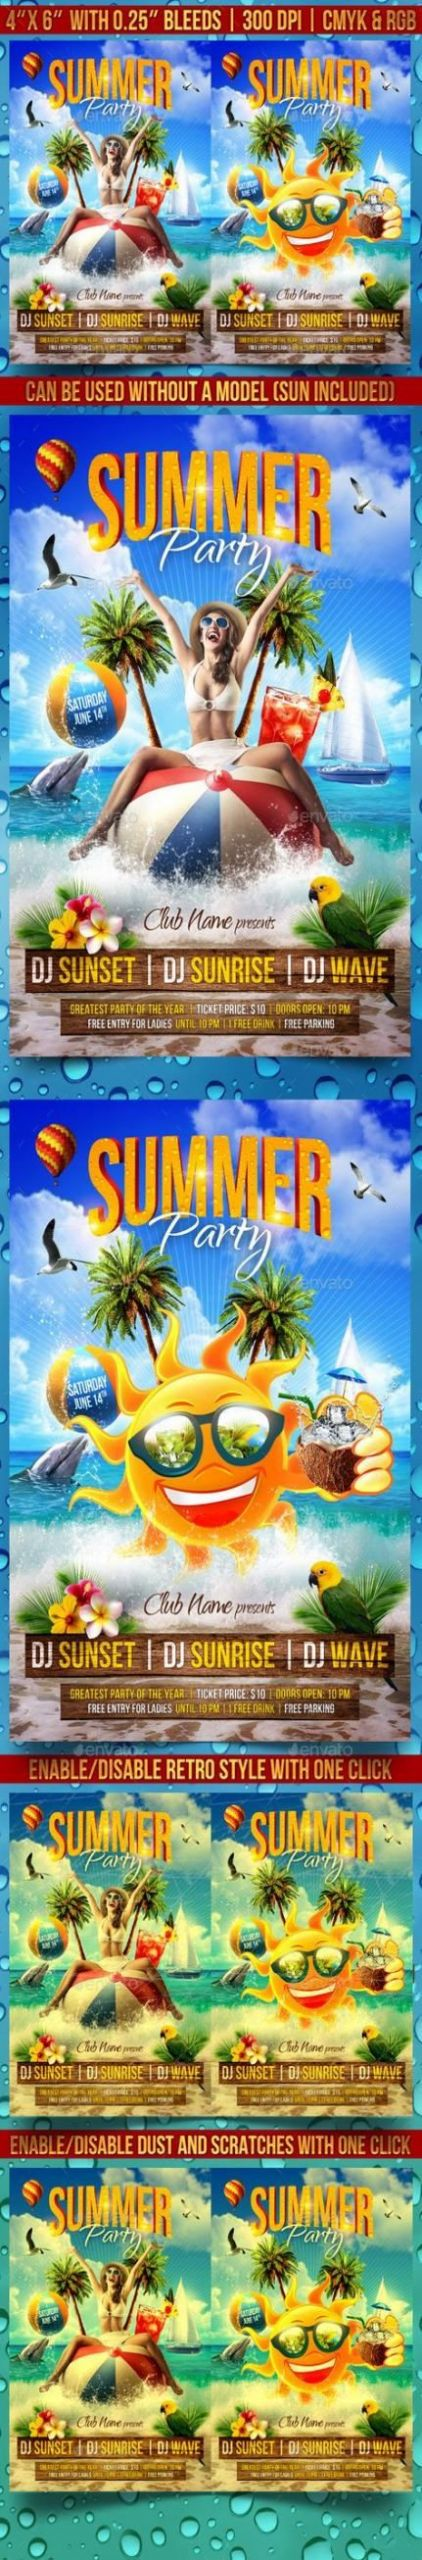 Summer Company Party Ideas  13 Best Ideas For pany Summer Party in 2020